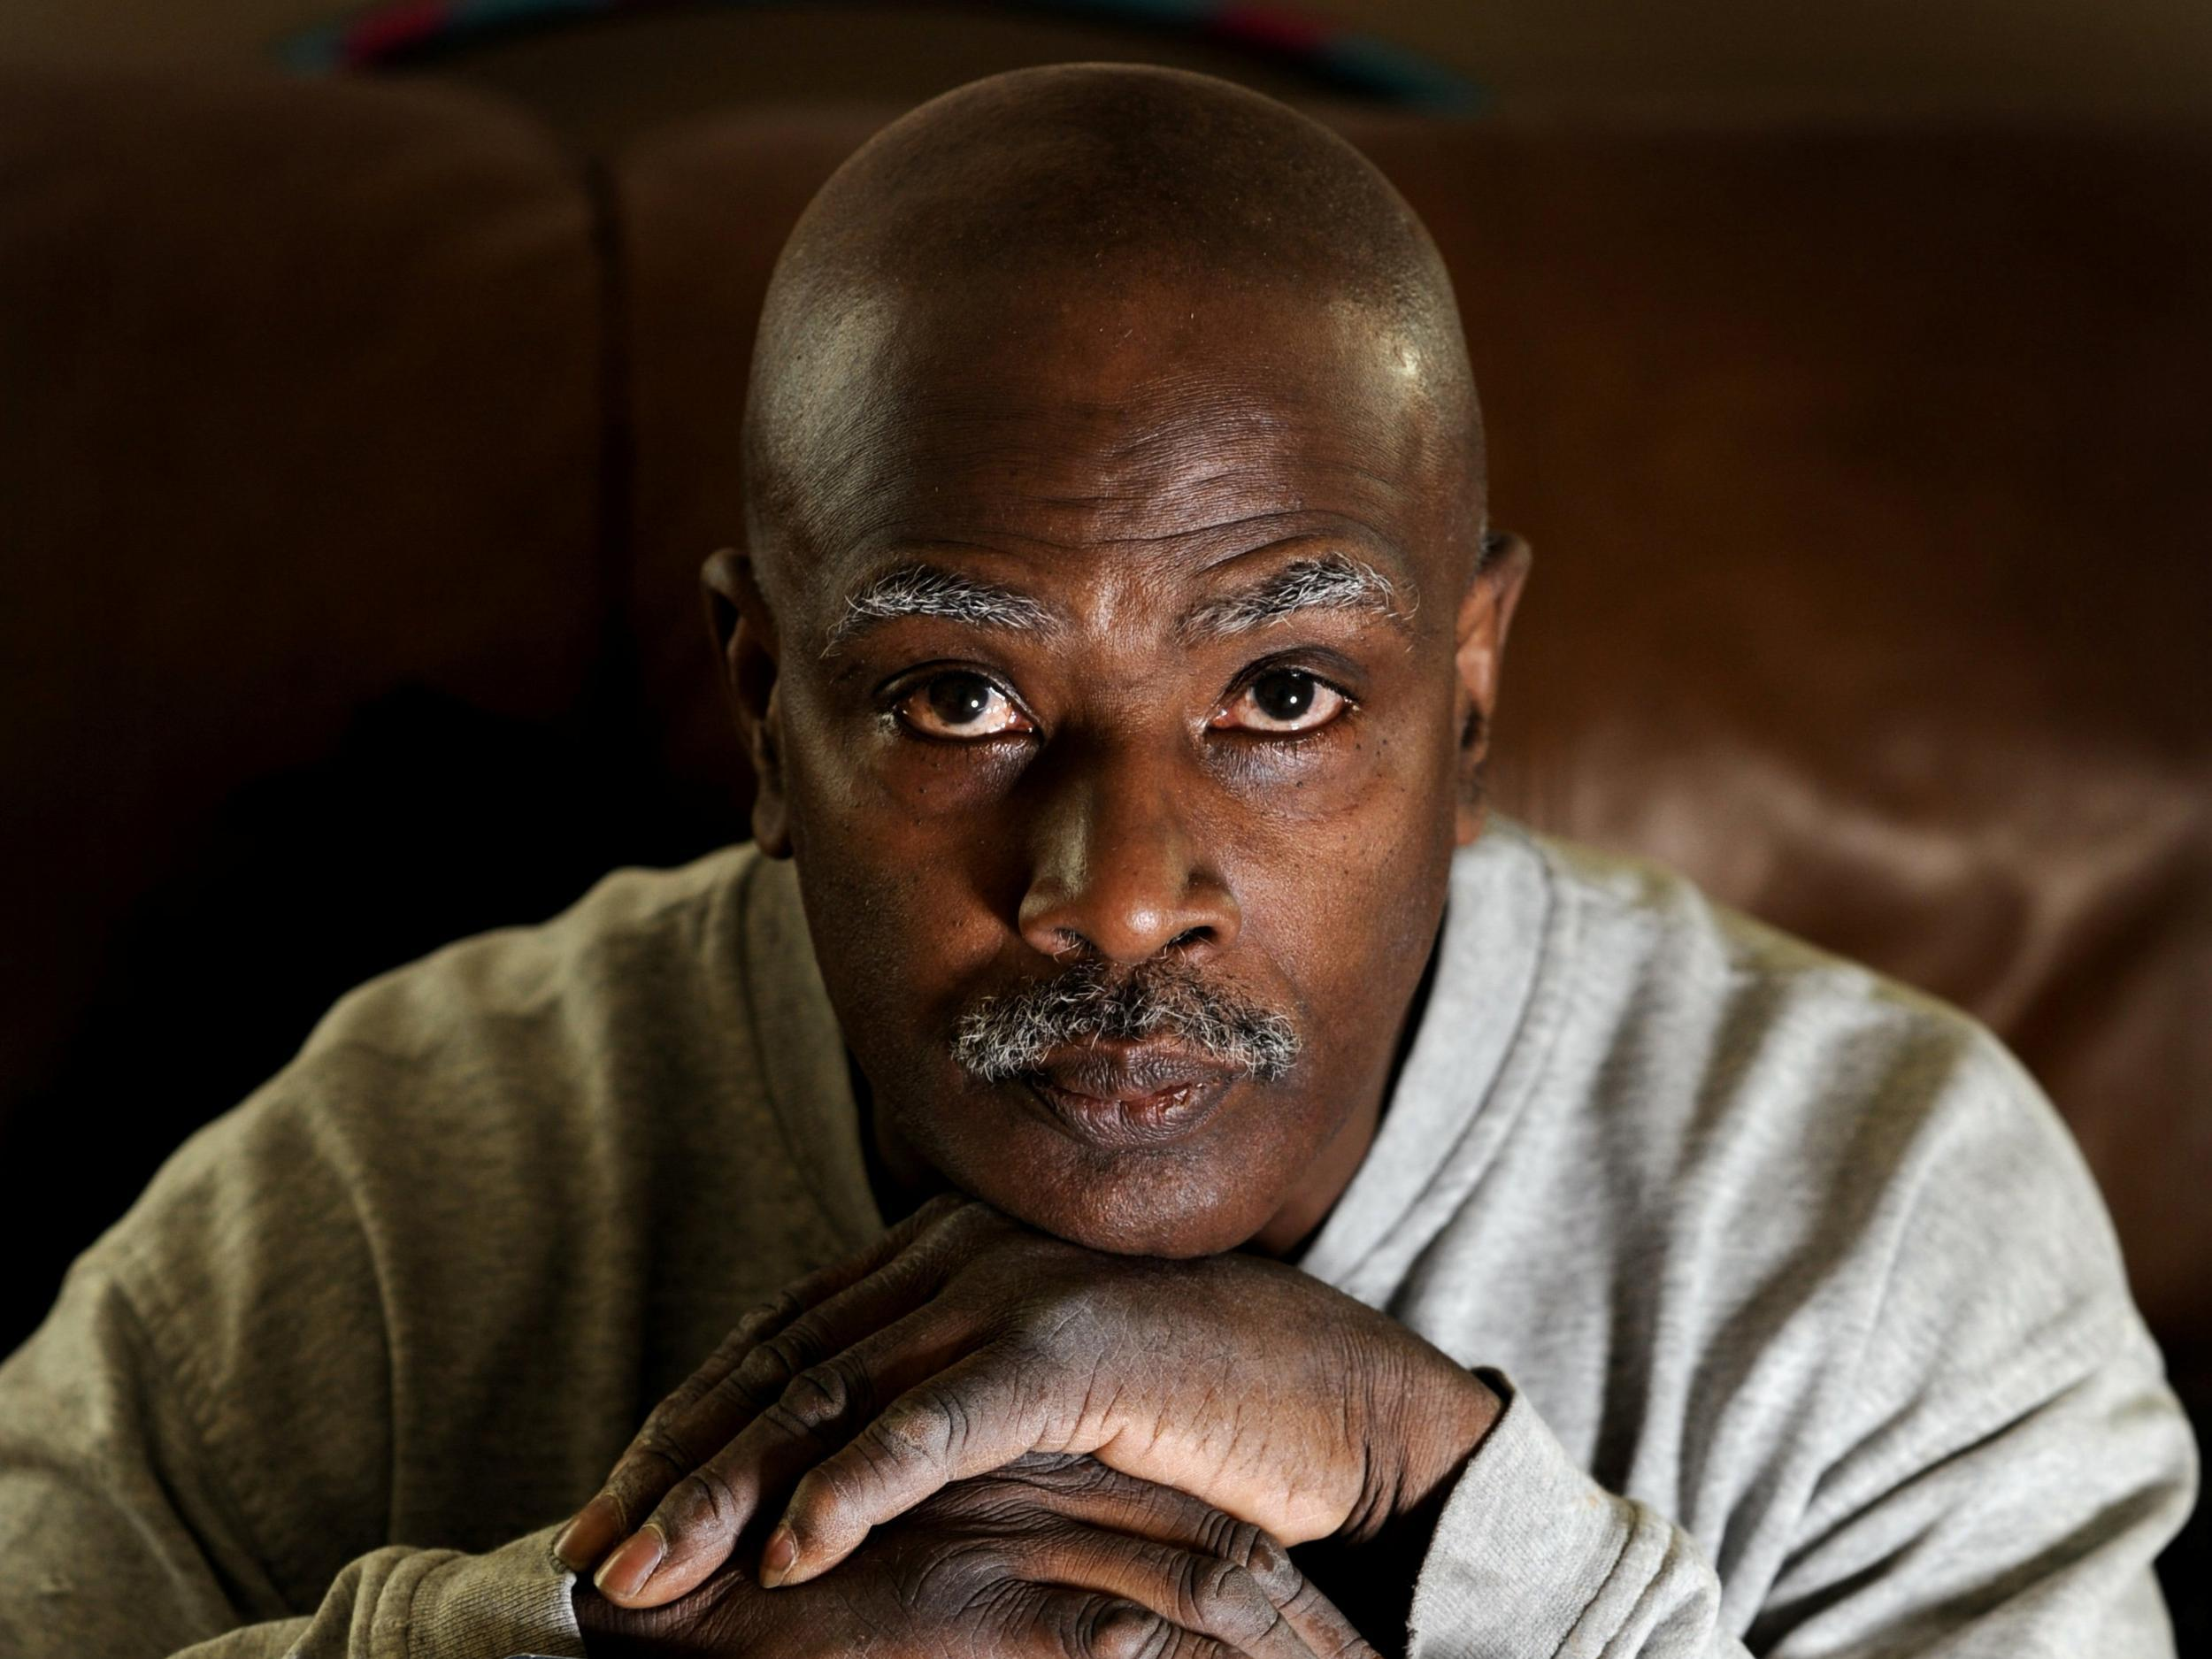 Windrush scandal: Man who has lived in Britain for 54 years misses daughter's wedding after Home Office refuses him a passport